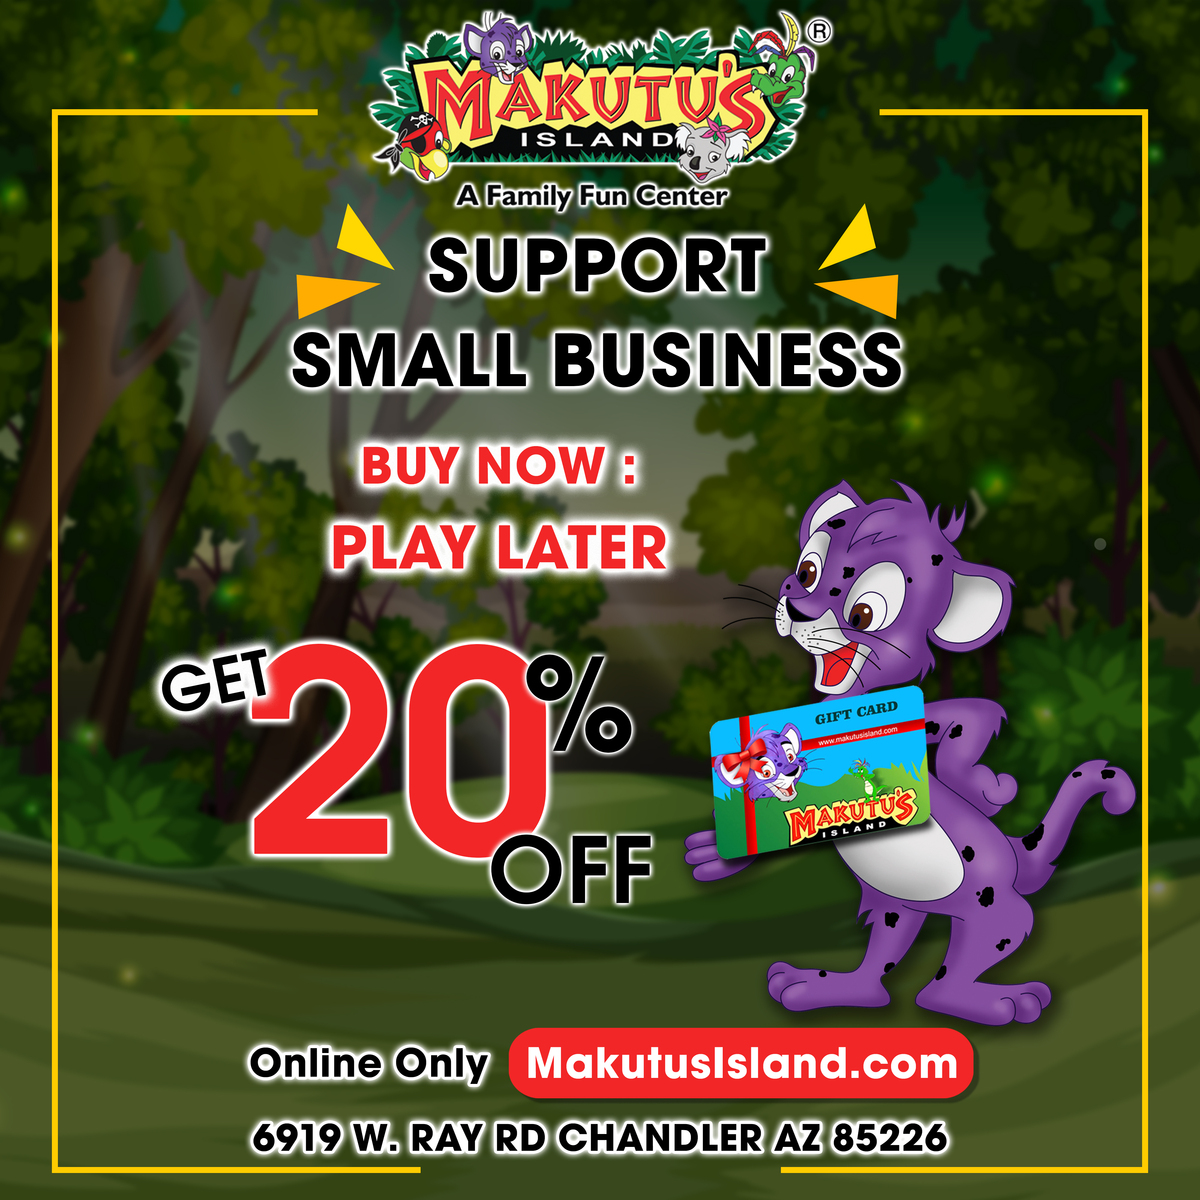 Support Local, Support Small Businesses Buy now - Play Later Get your gift cards at 20% off Online only - http://MakutusIsland.com Visit http://MakutusIsland.com #makutusisland #Funtasticpass #funcenter #kidsplay #celebrations #fun #stayhome #staysafe #giftcardspic.twitter.com/uG3mOZklOQ